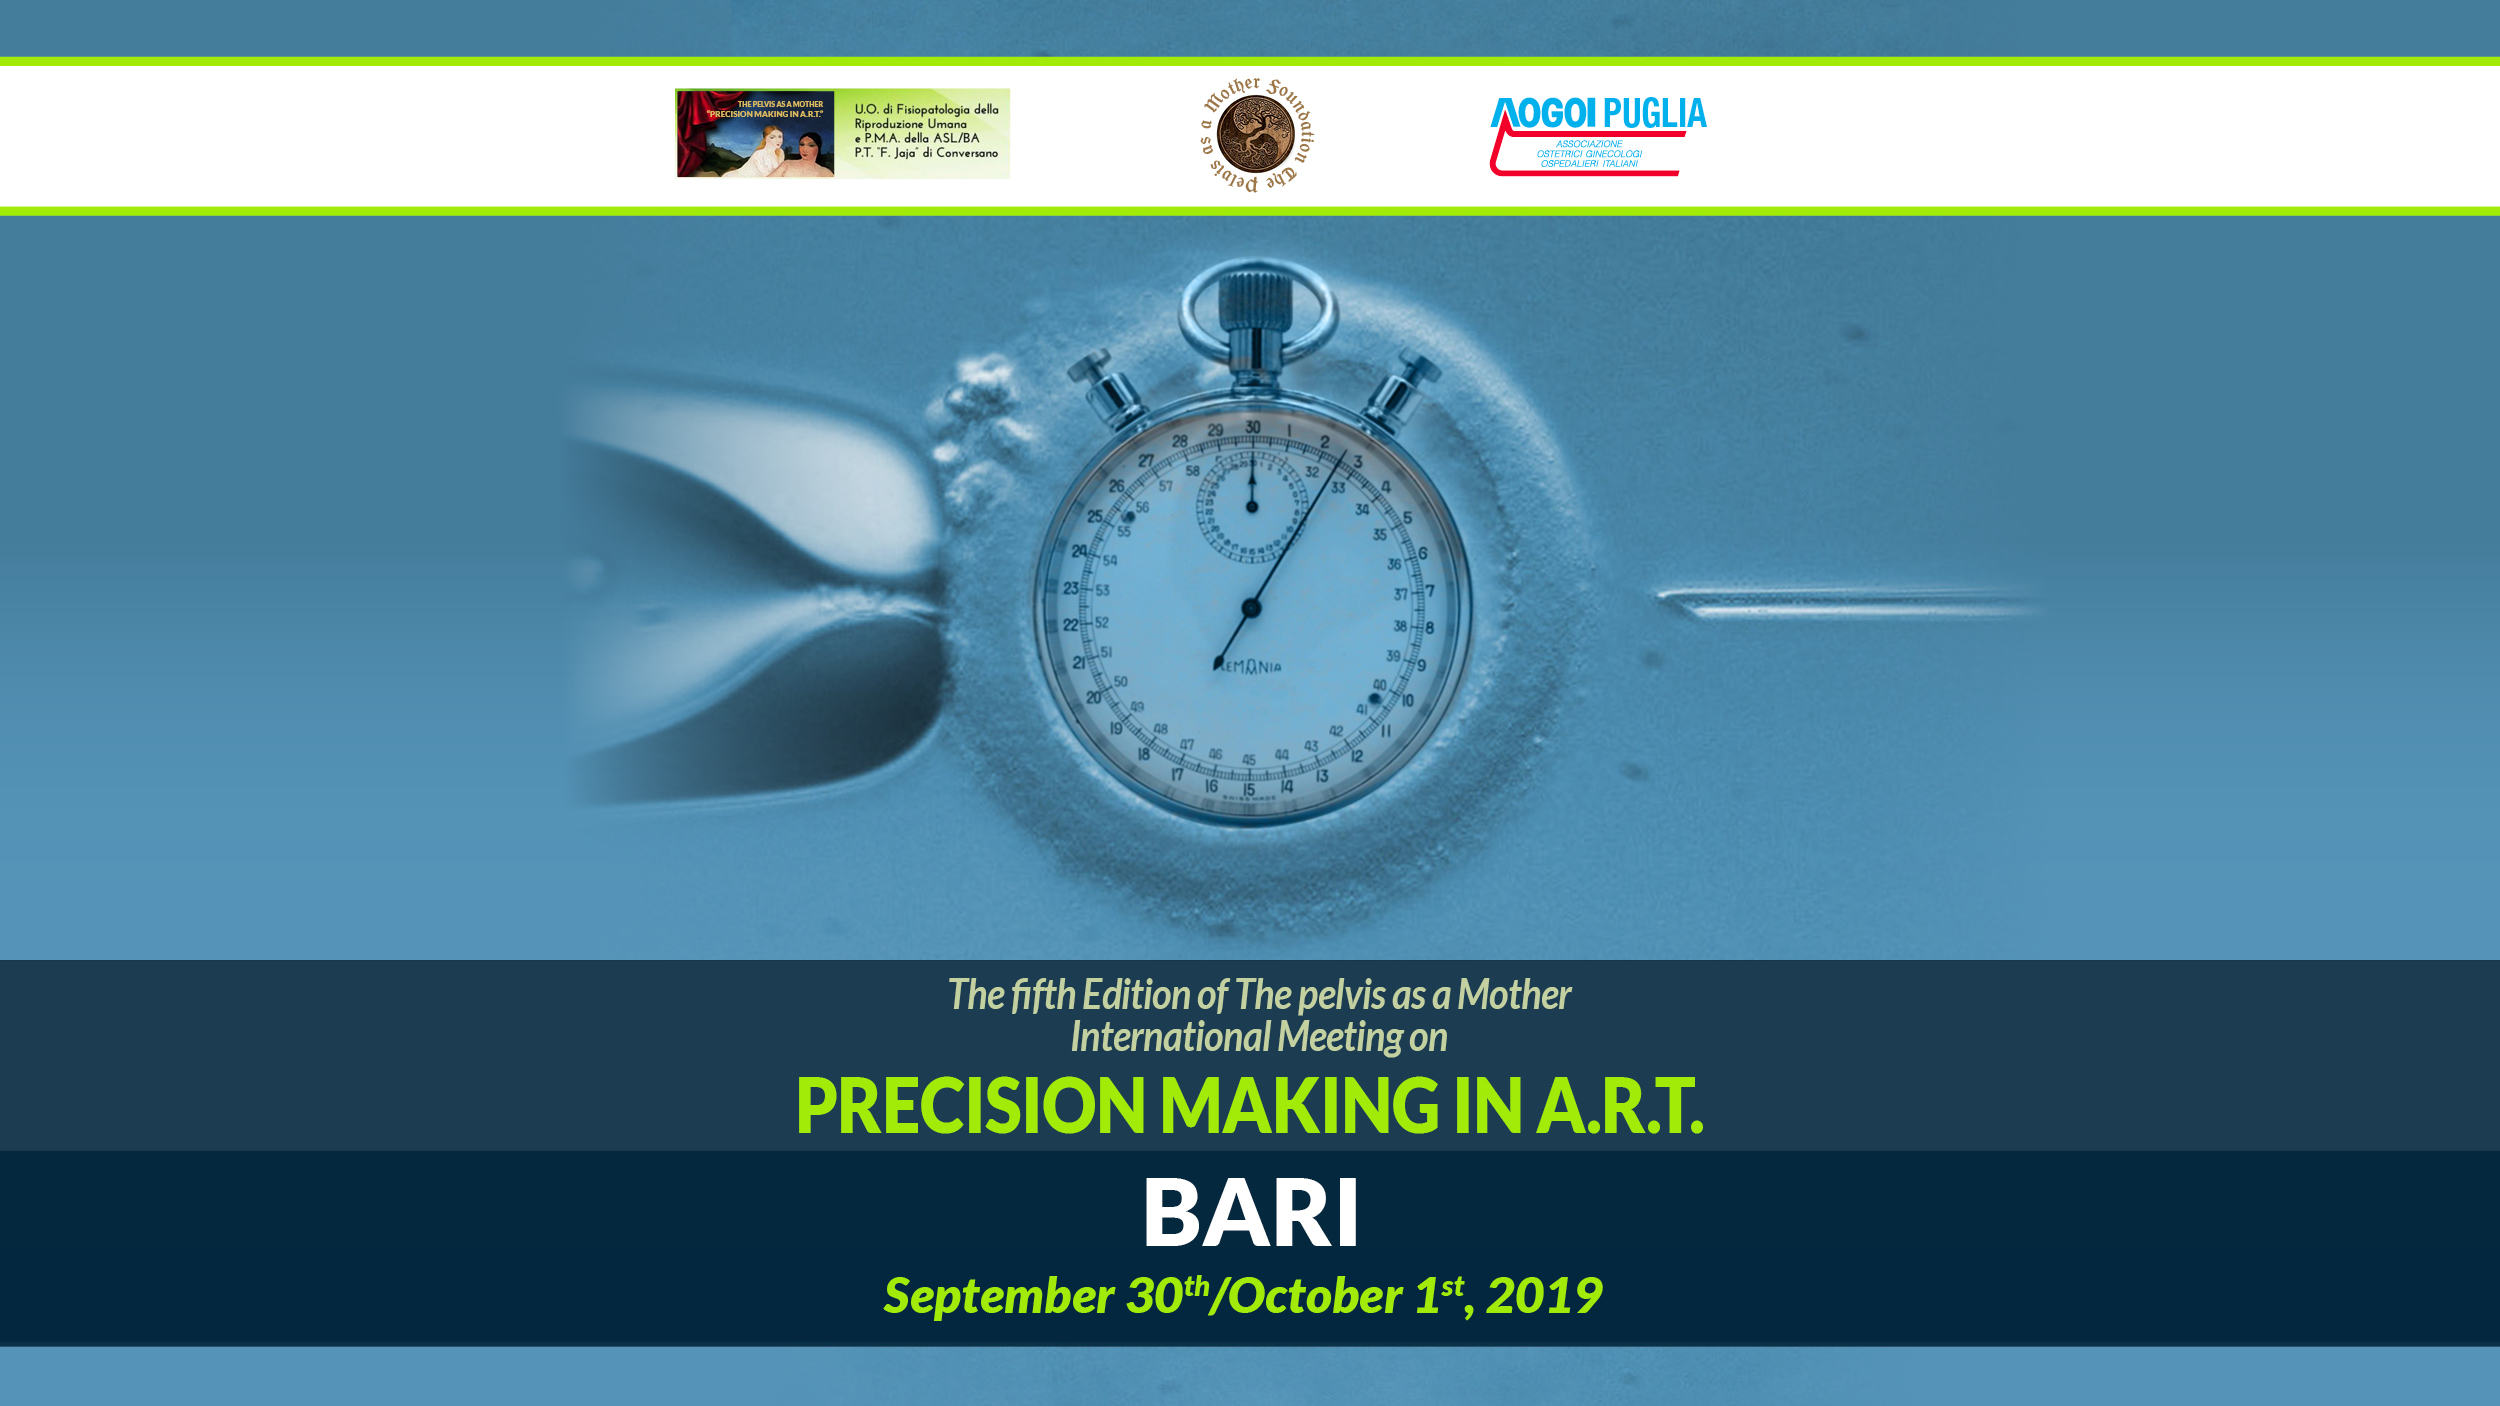 The fifth edition of The Pelvis as a Mother international Meeting on PRECISION MAKING IN A.R.T.